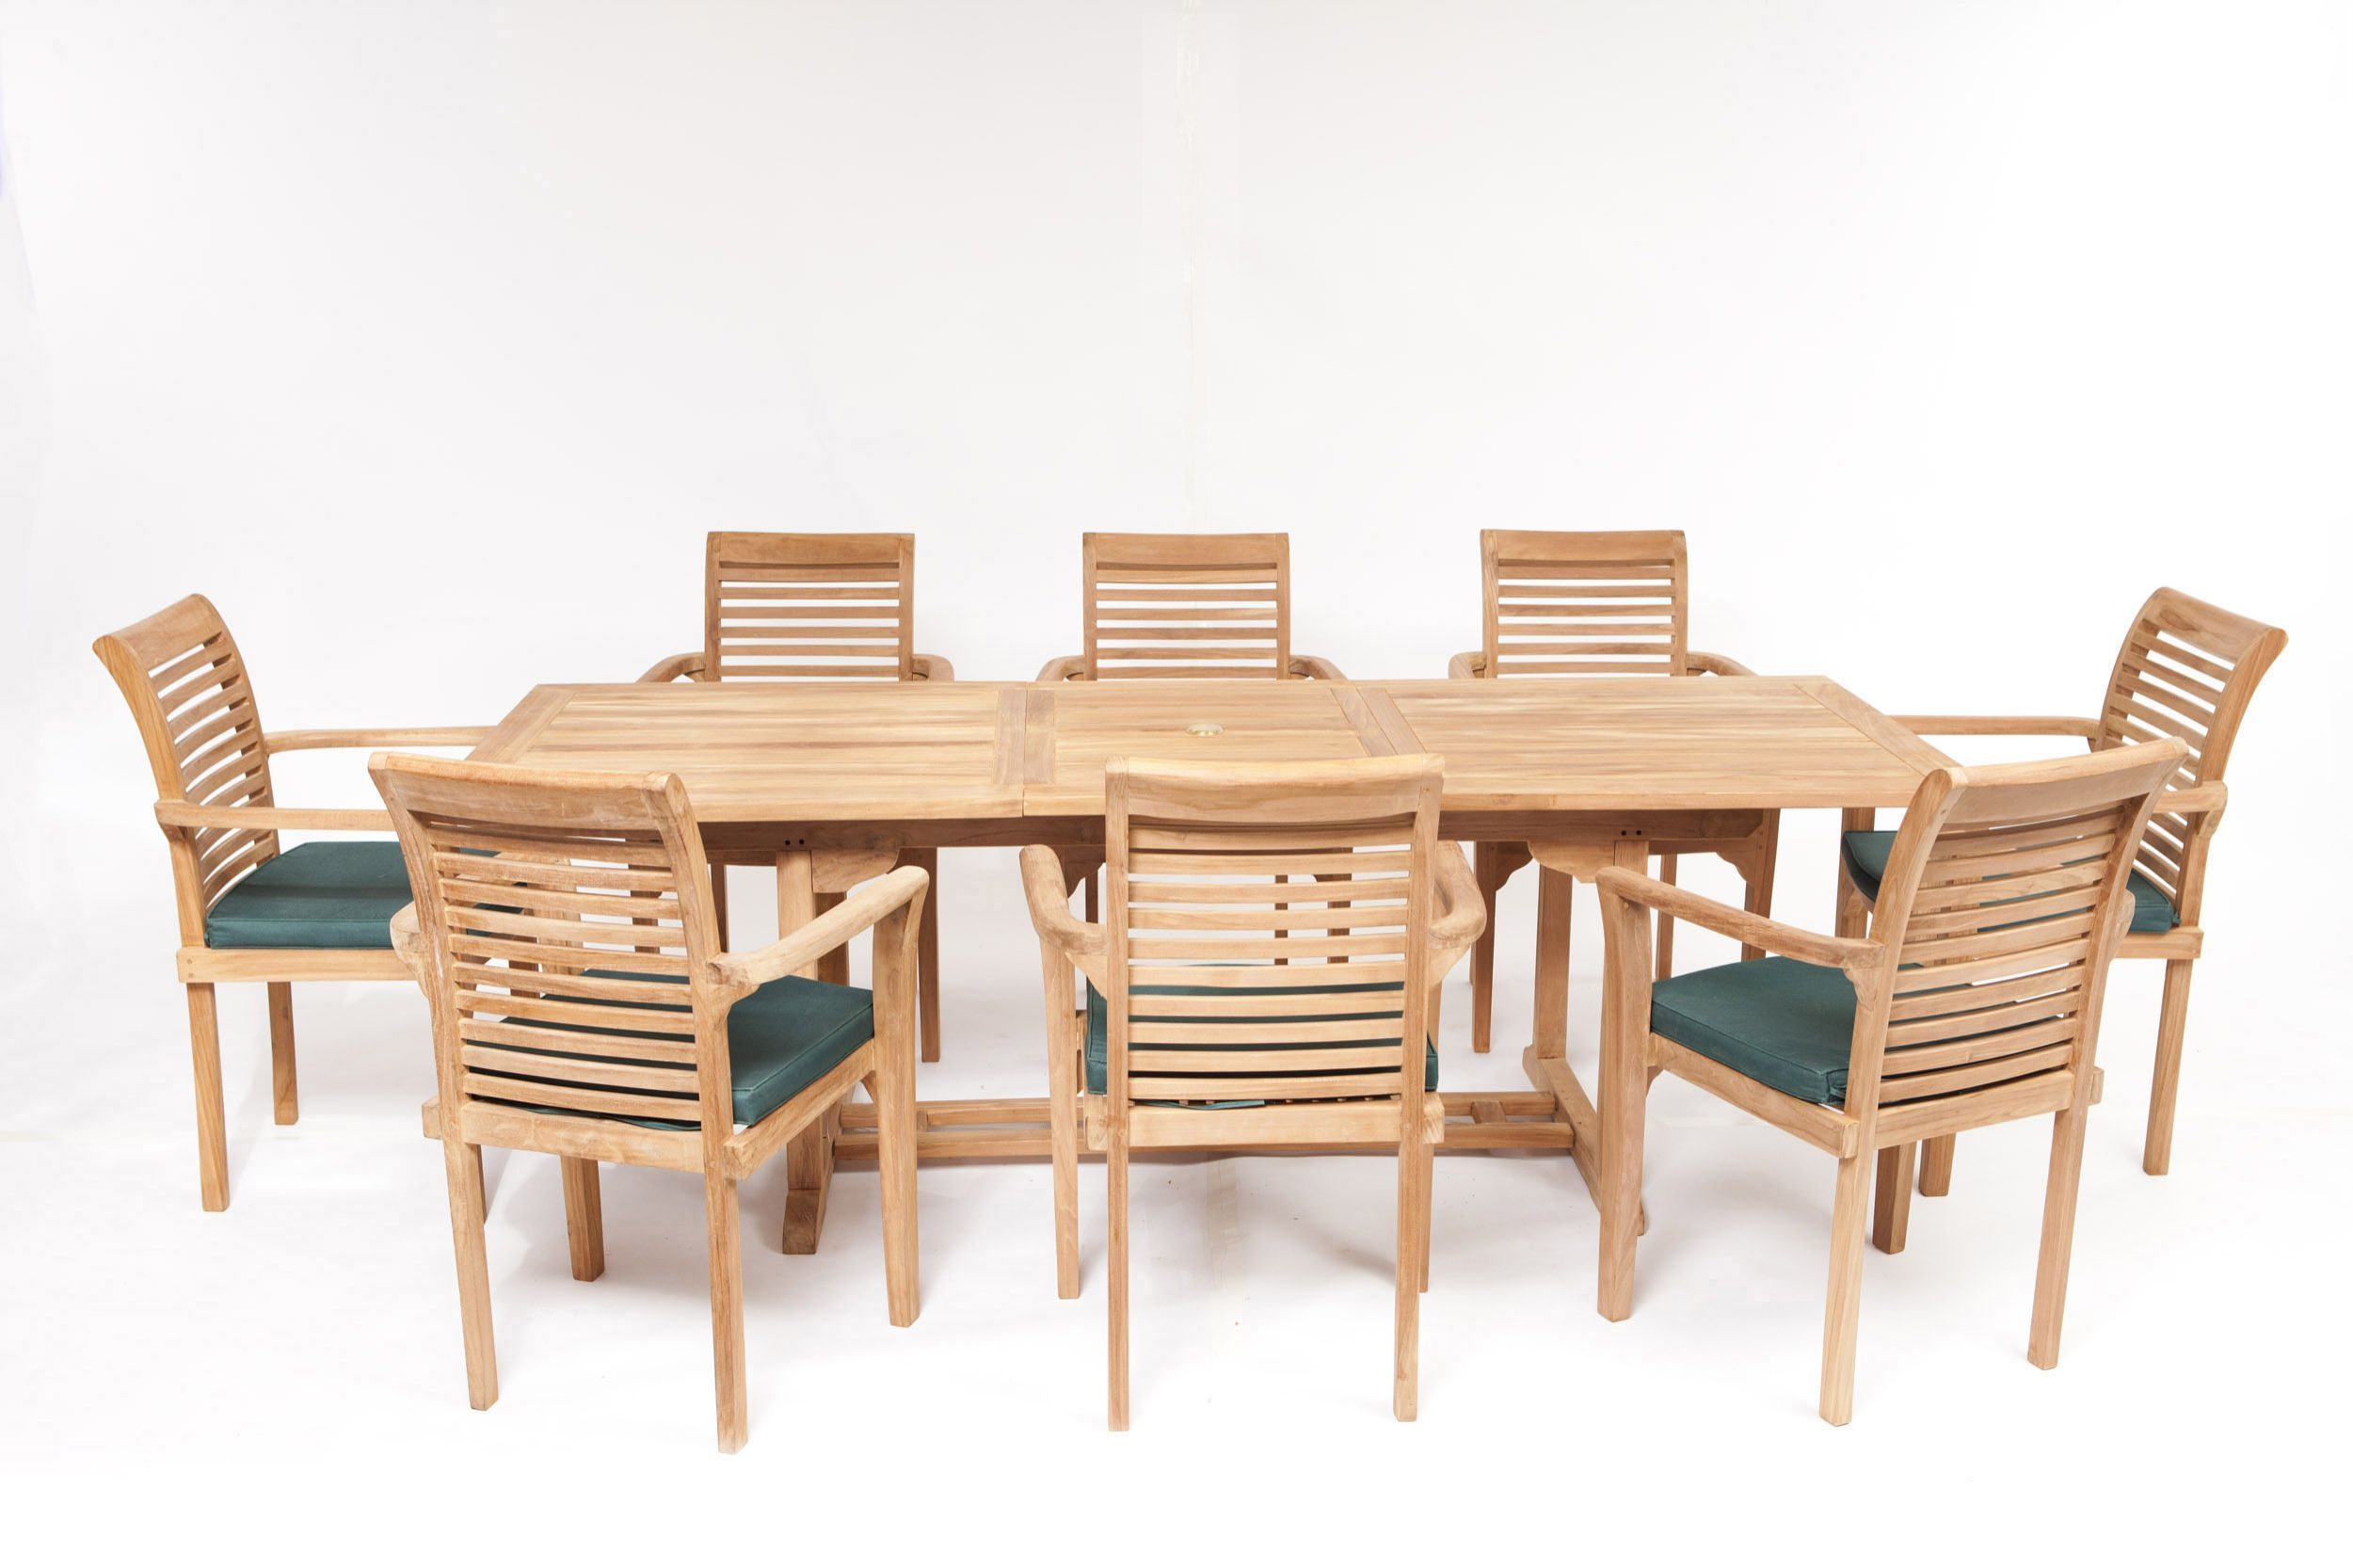 Geneva teak garden furniture set humber imports uk for Teak outdoor furniture